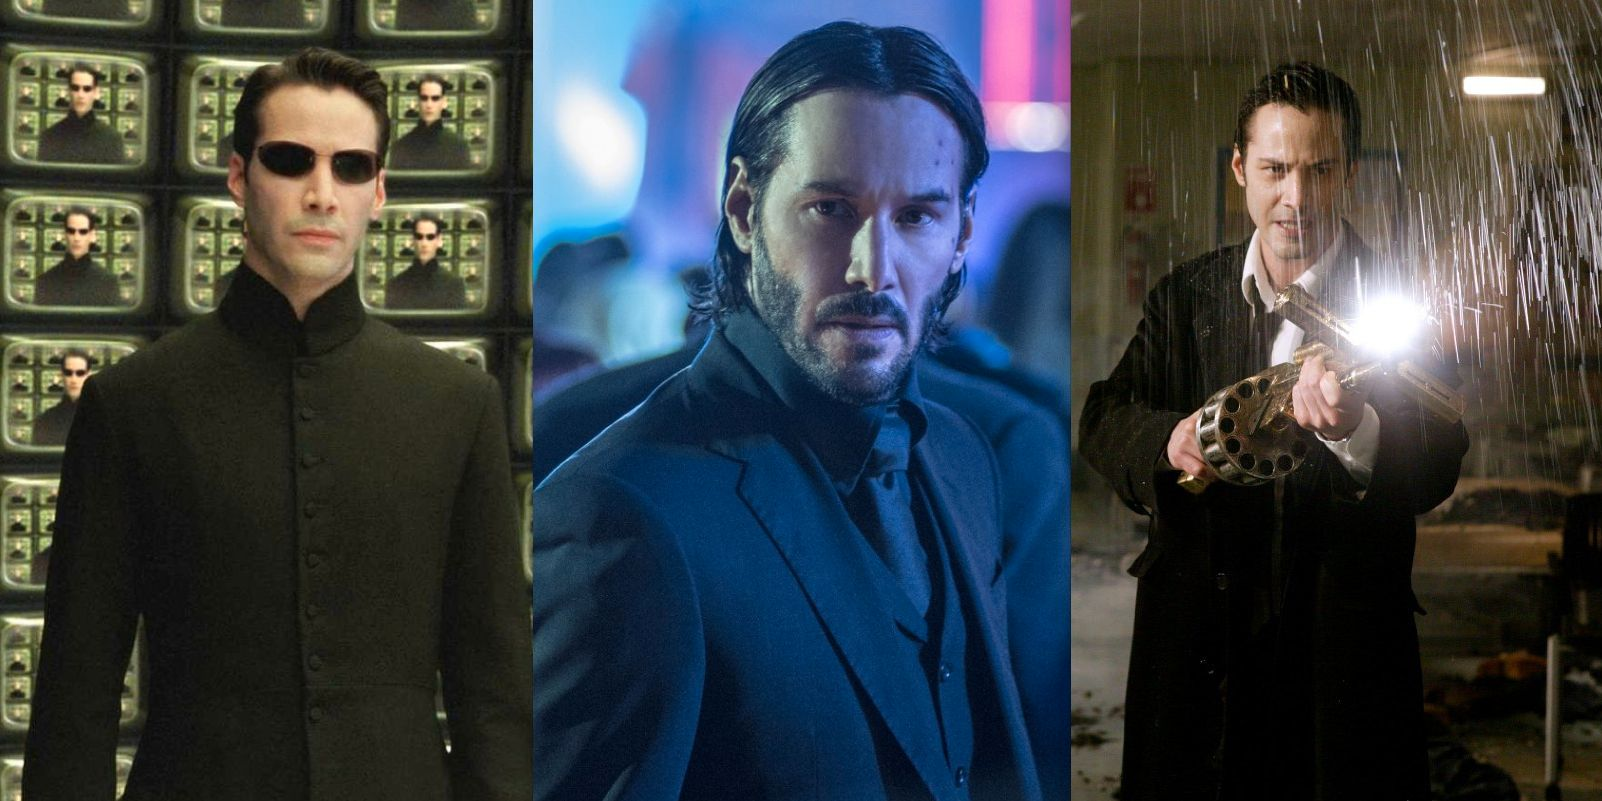 Keanu Reeves in the Constantine Sequel after 15 Years